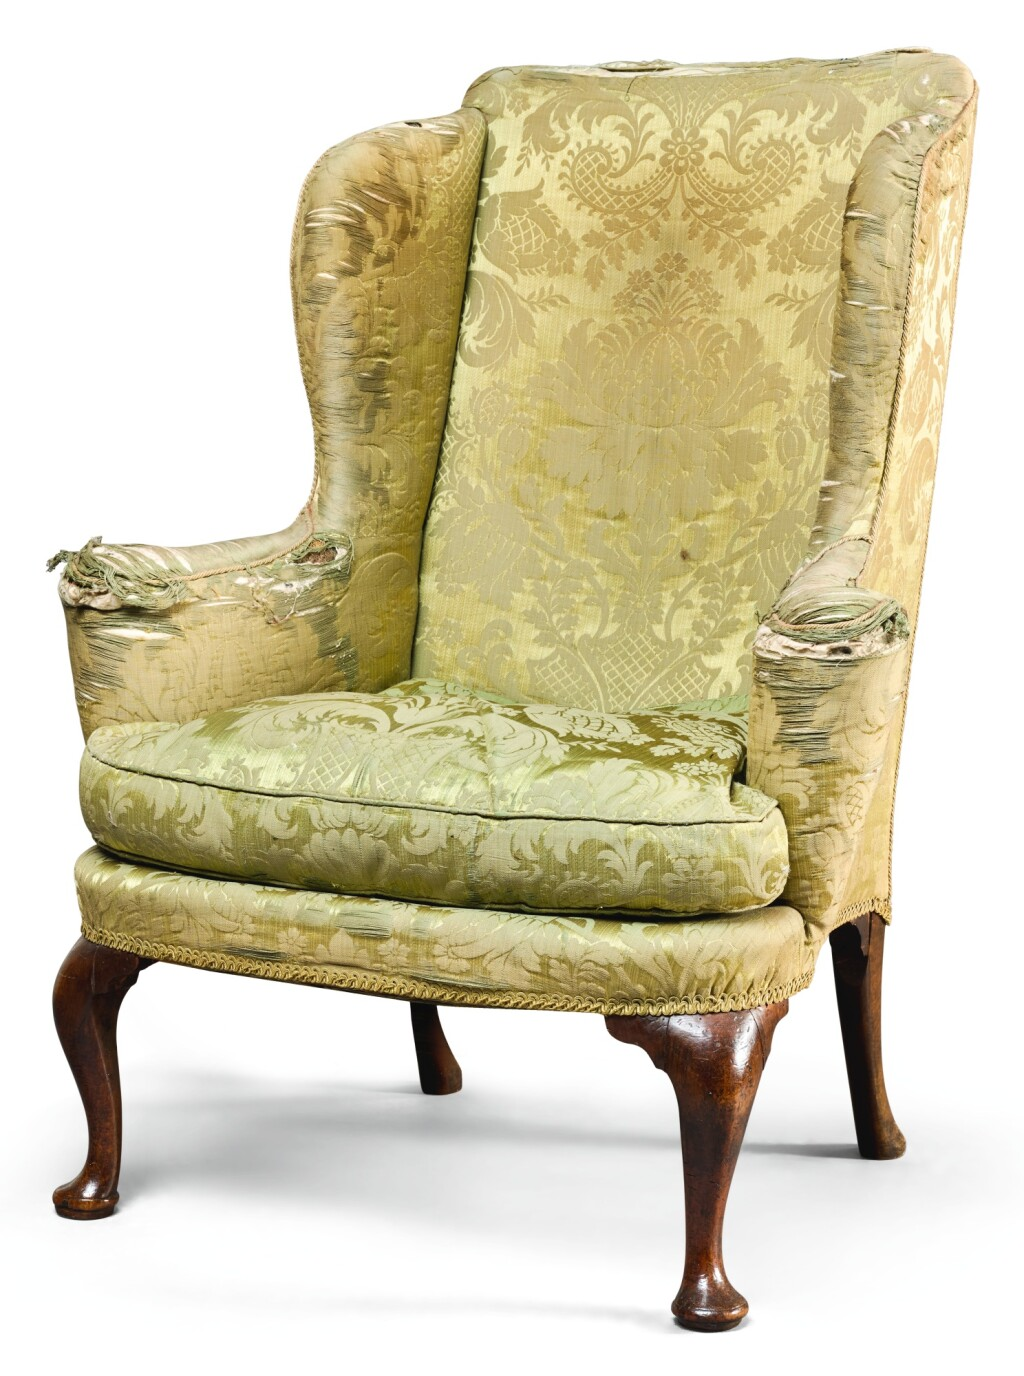 A GEORGE I WALNUT WING-BACK ARMCHAIR, CIRCA 1710